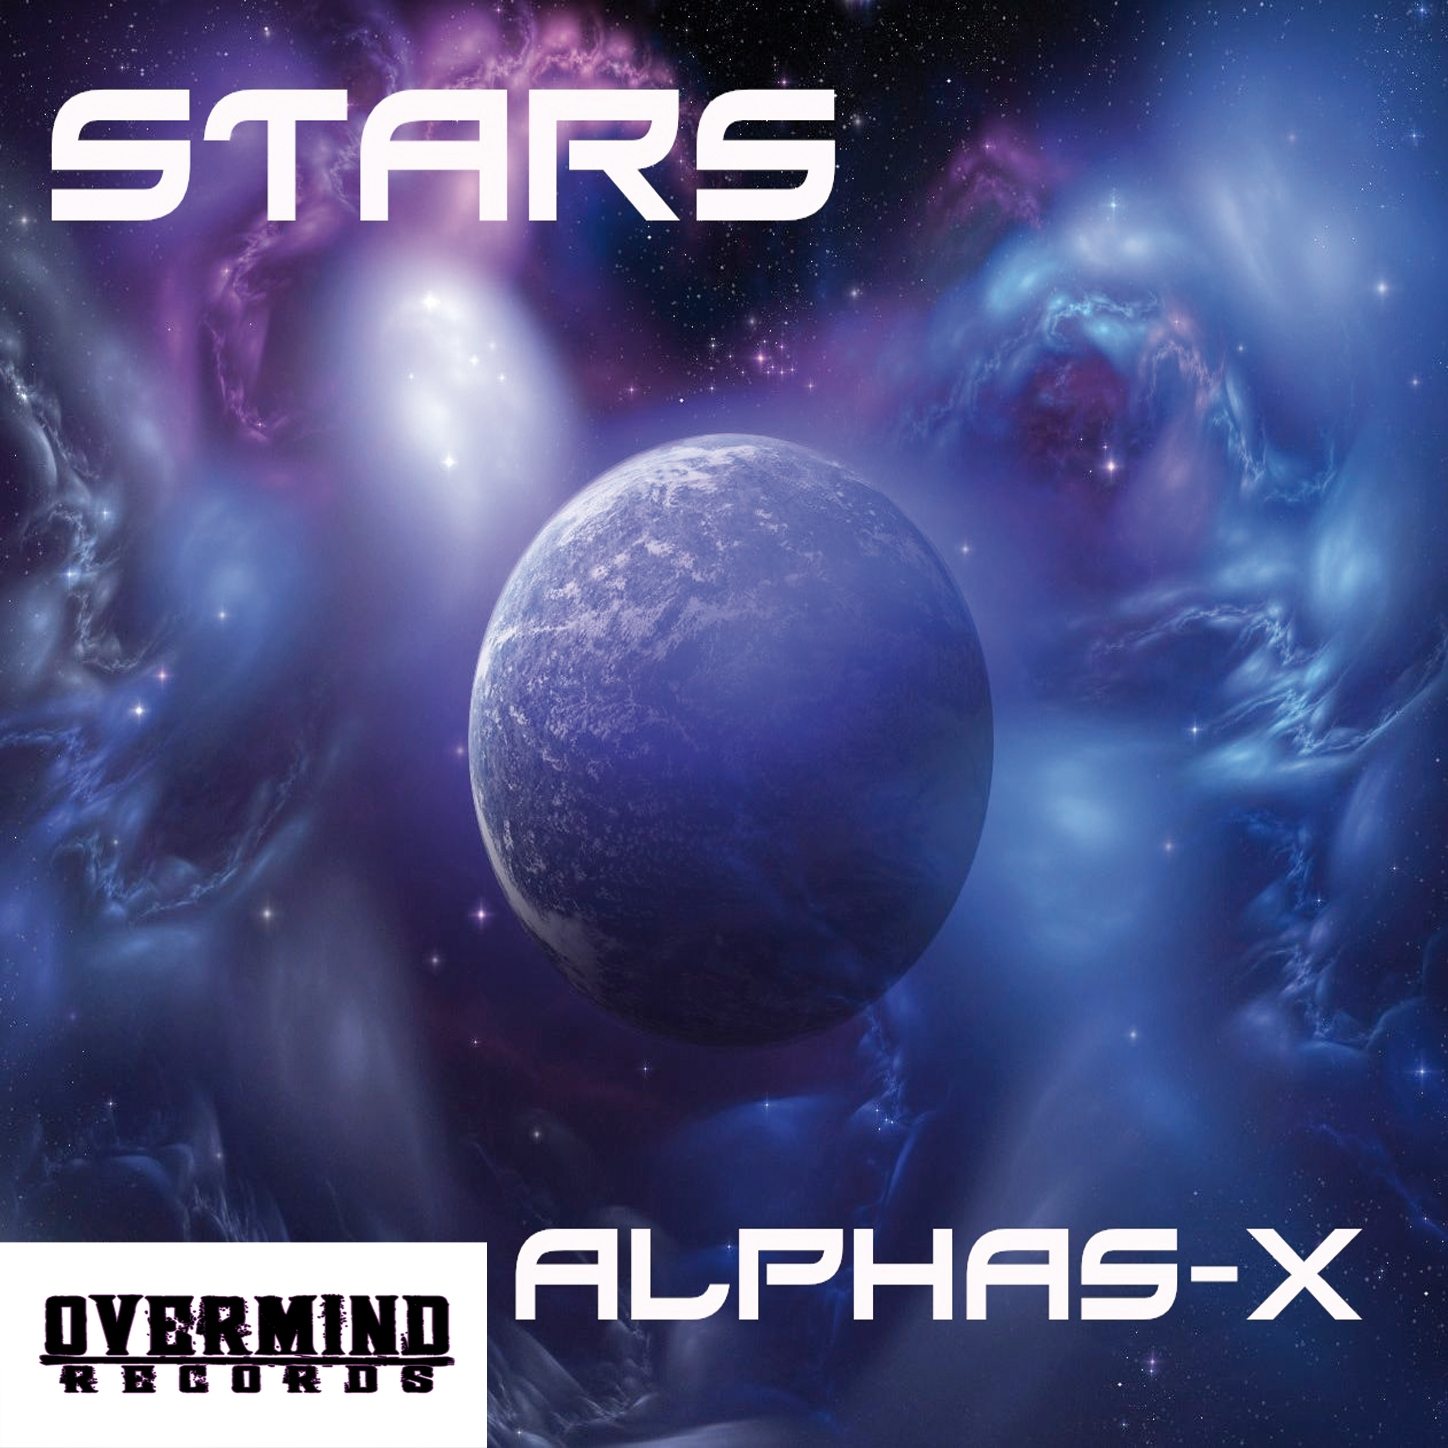 Alpha-x - Stars (Original mix)